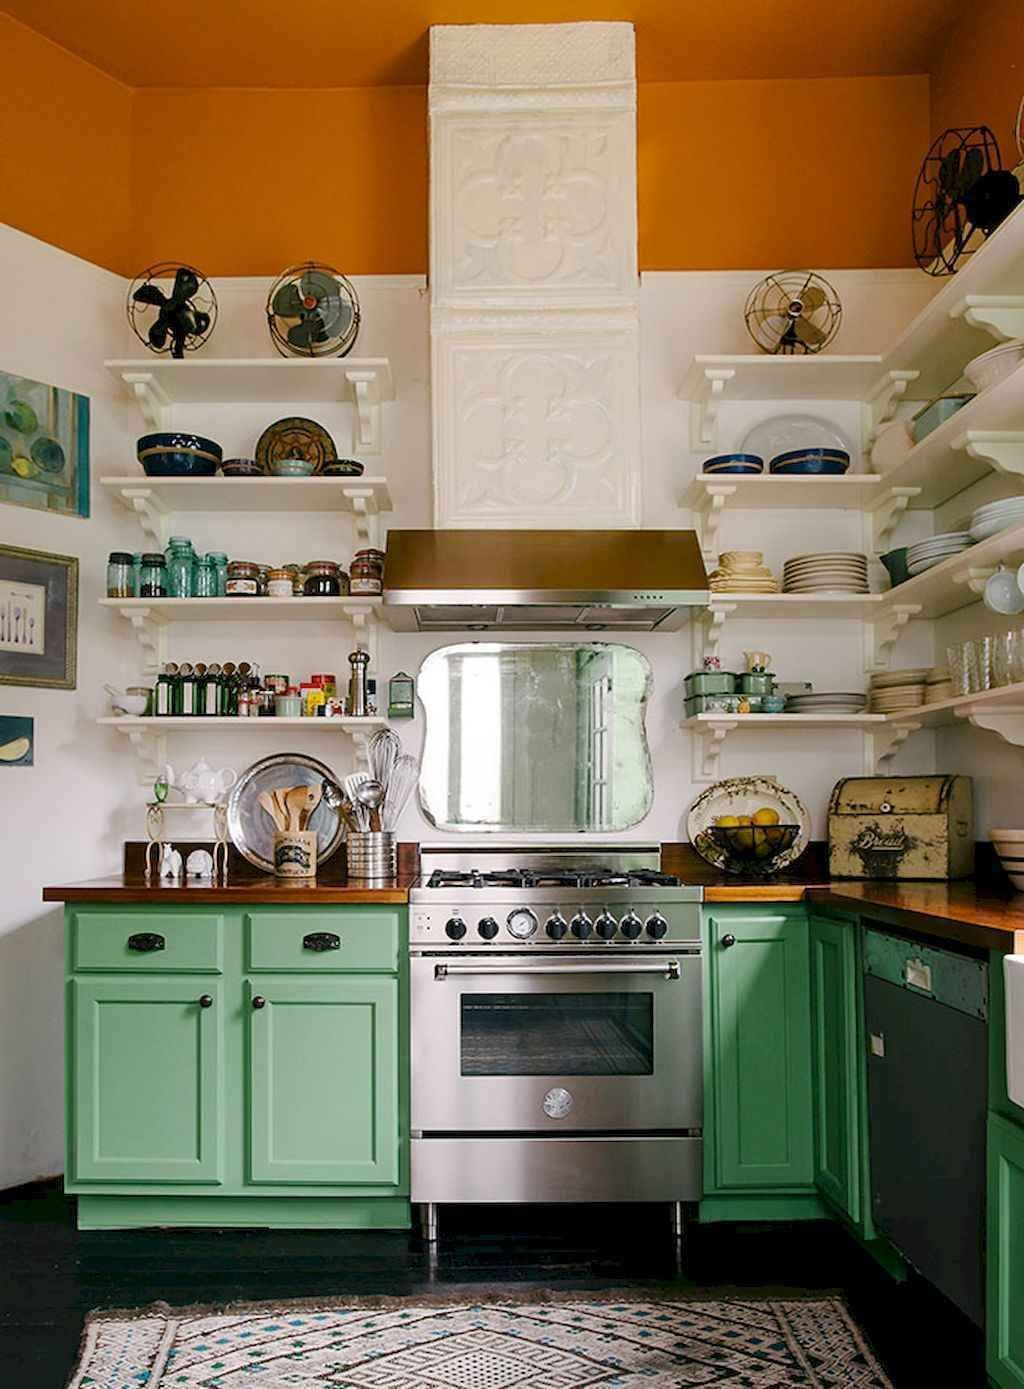 Eclectic Kitchen New Kitchen Cabinets Kitchen Renovation Budget Kitchen Remodel Kitche In 2020 Eclectic Kitchen Kitchen Cabinets Decor Kitchen Design Color